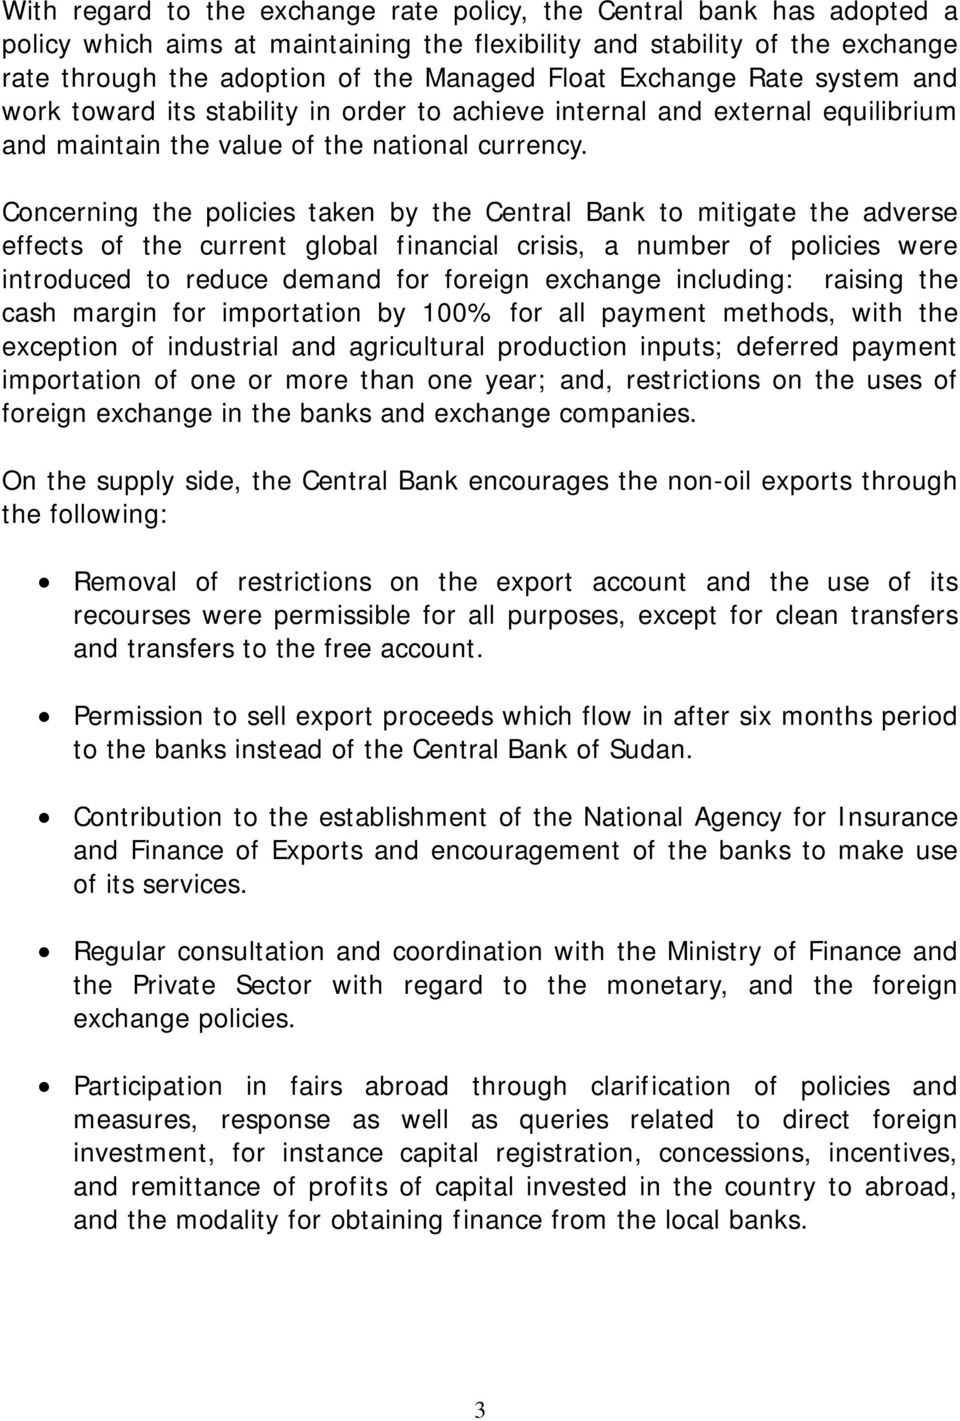 Concerning the policies taken by the Central Bank to mitigate the adverse effects of the current global financial crisis, a number of policies were introduced to reduce demand for foreign exchange